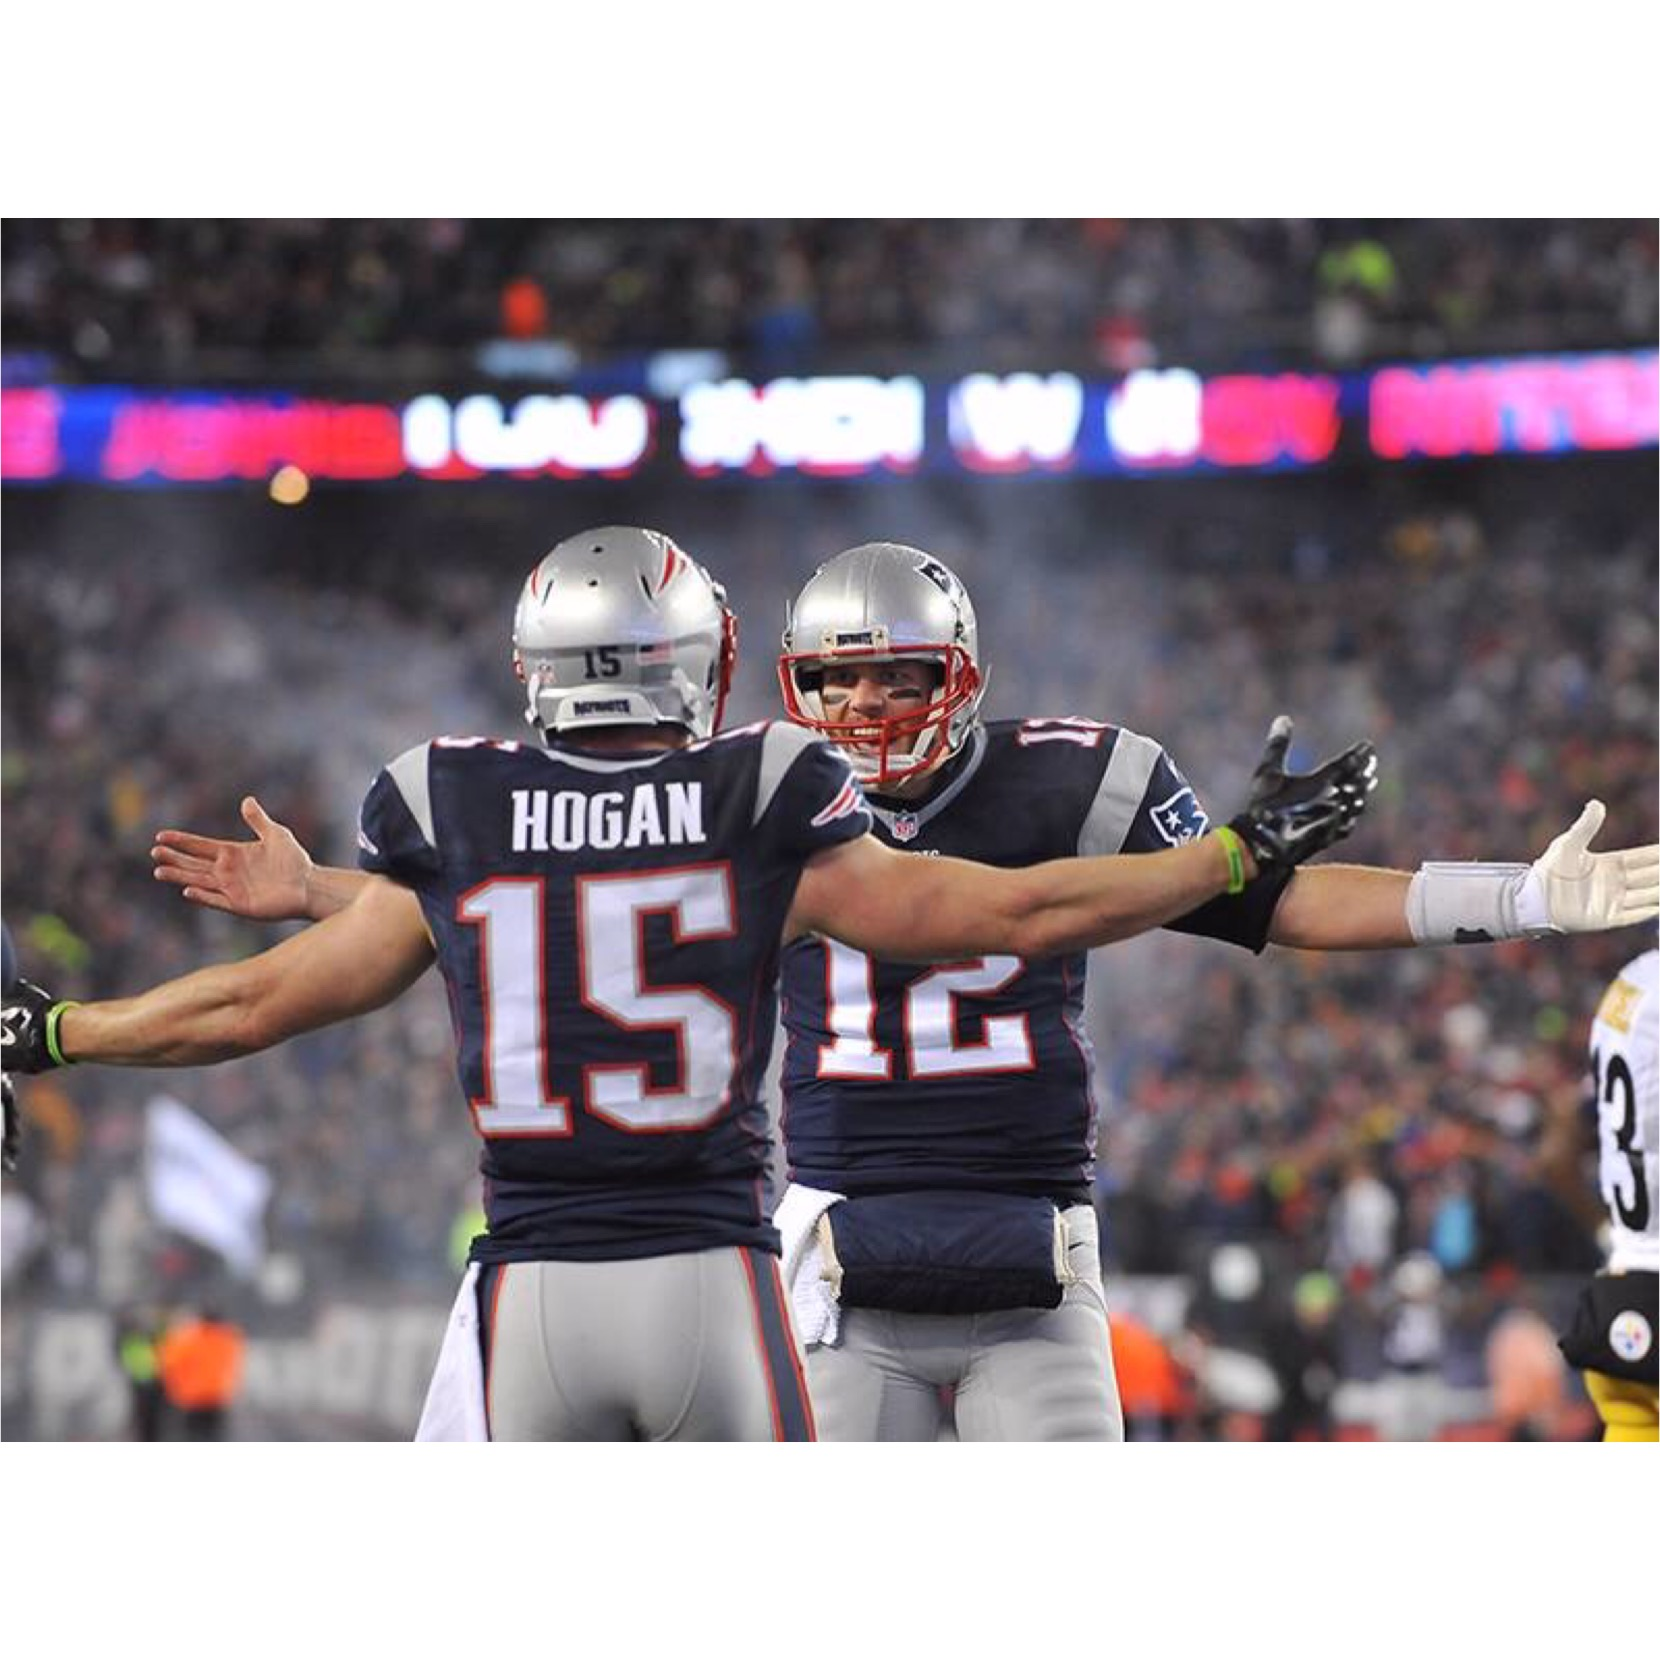 7cc43cbbae7 The Suffolk Journal | Patriots tackle Steelers; NE advances to ...